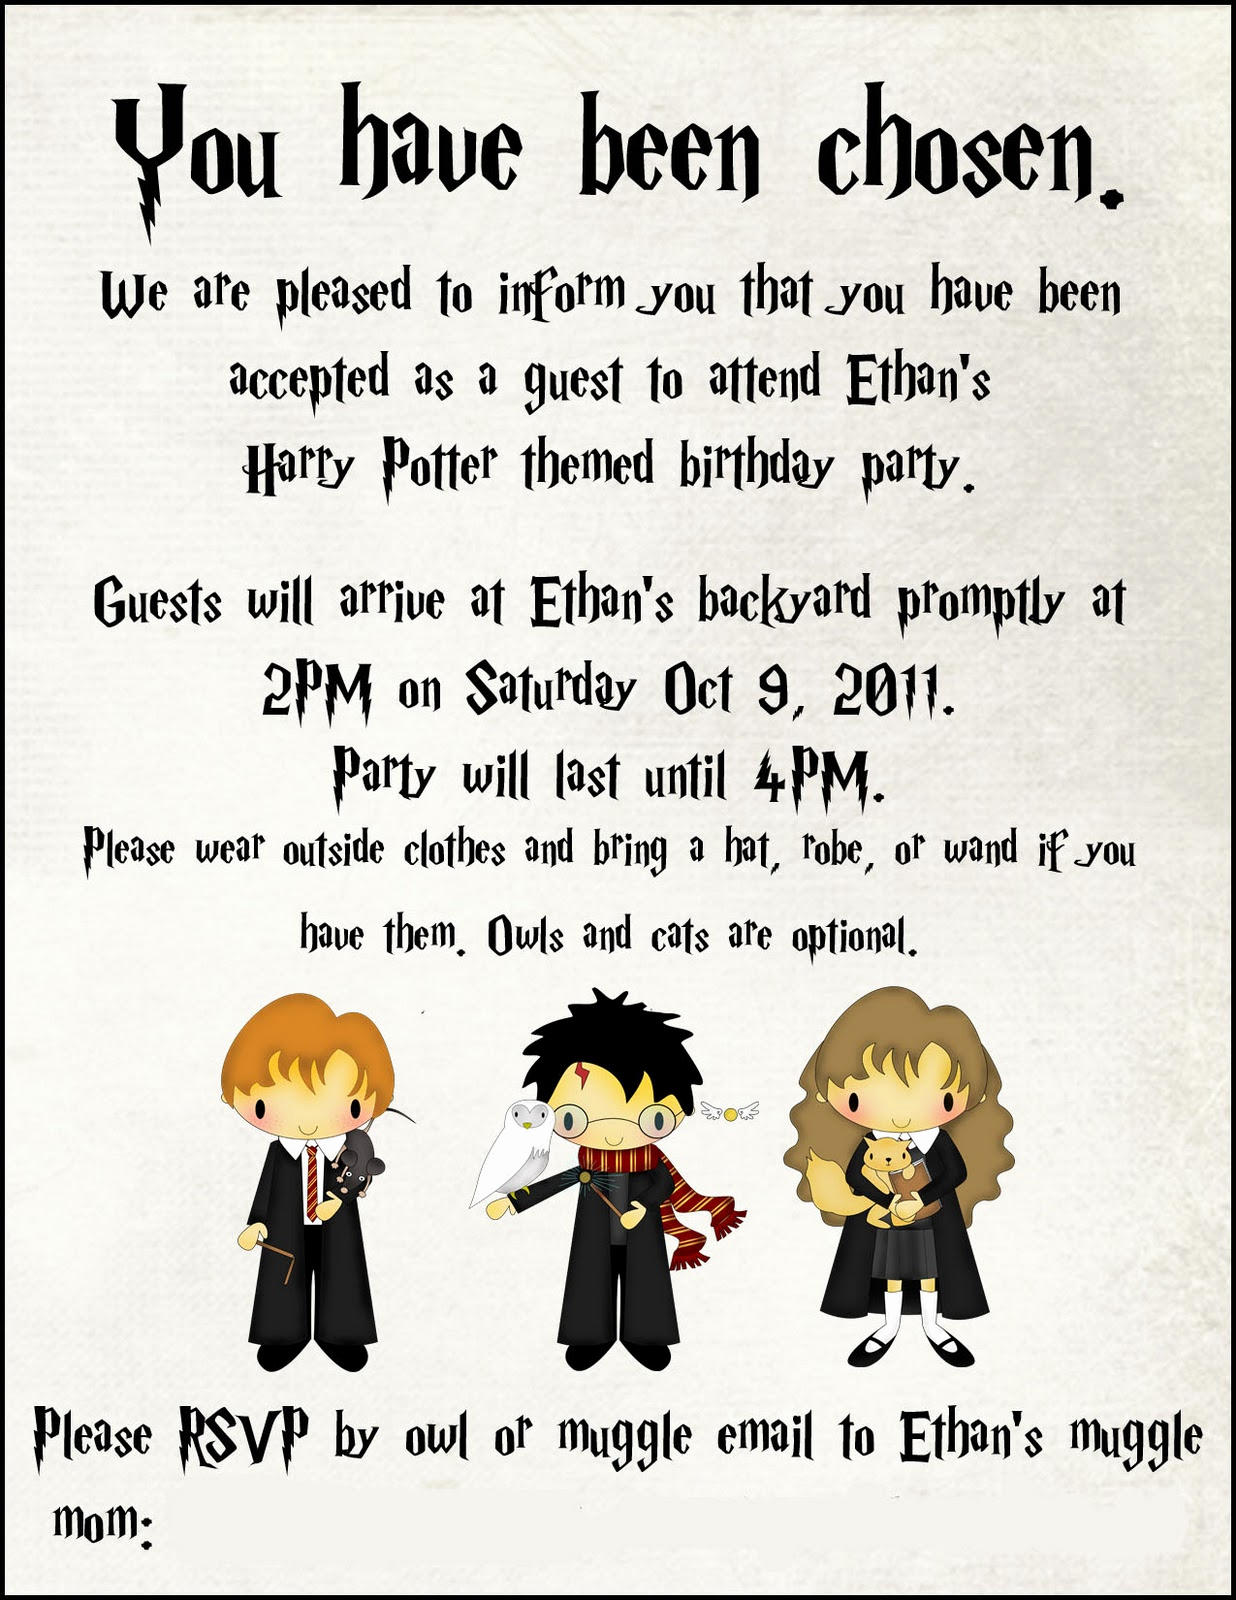 Harry Potter Party Invitation Template New toad S Treasures Lifestyle Family Blog by Emily ashby